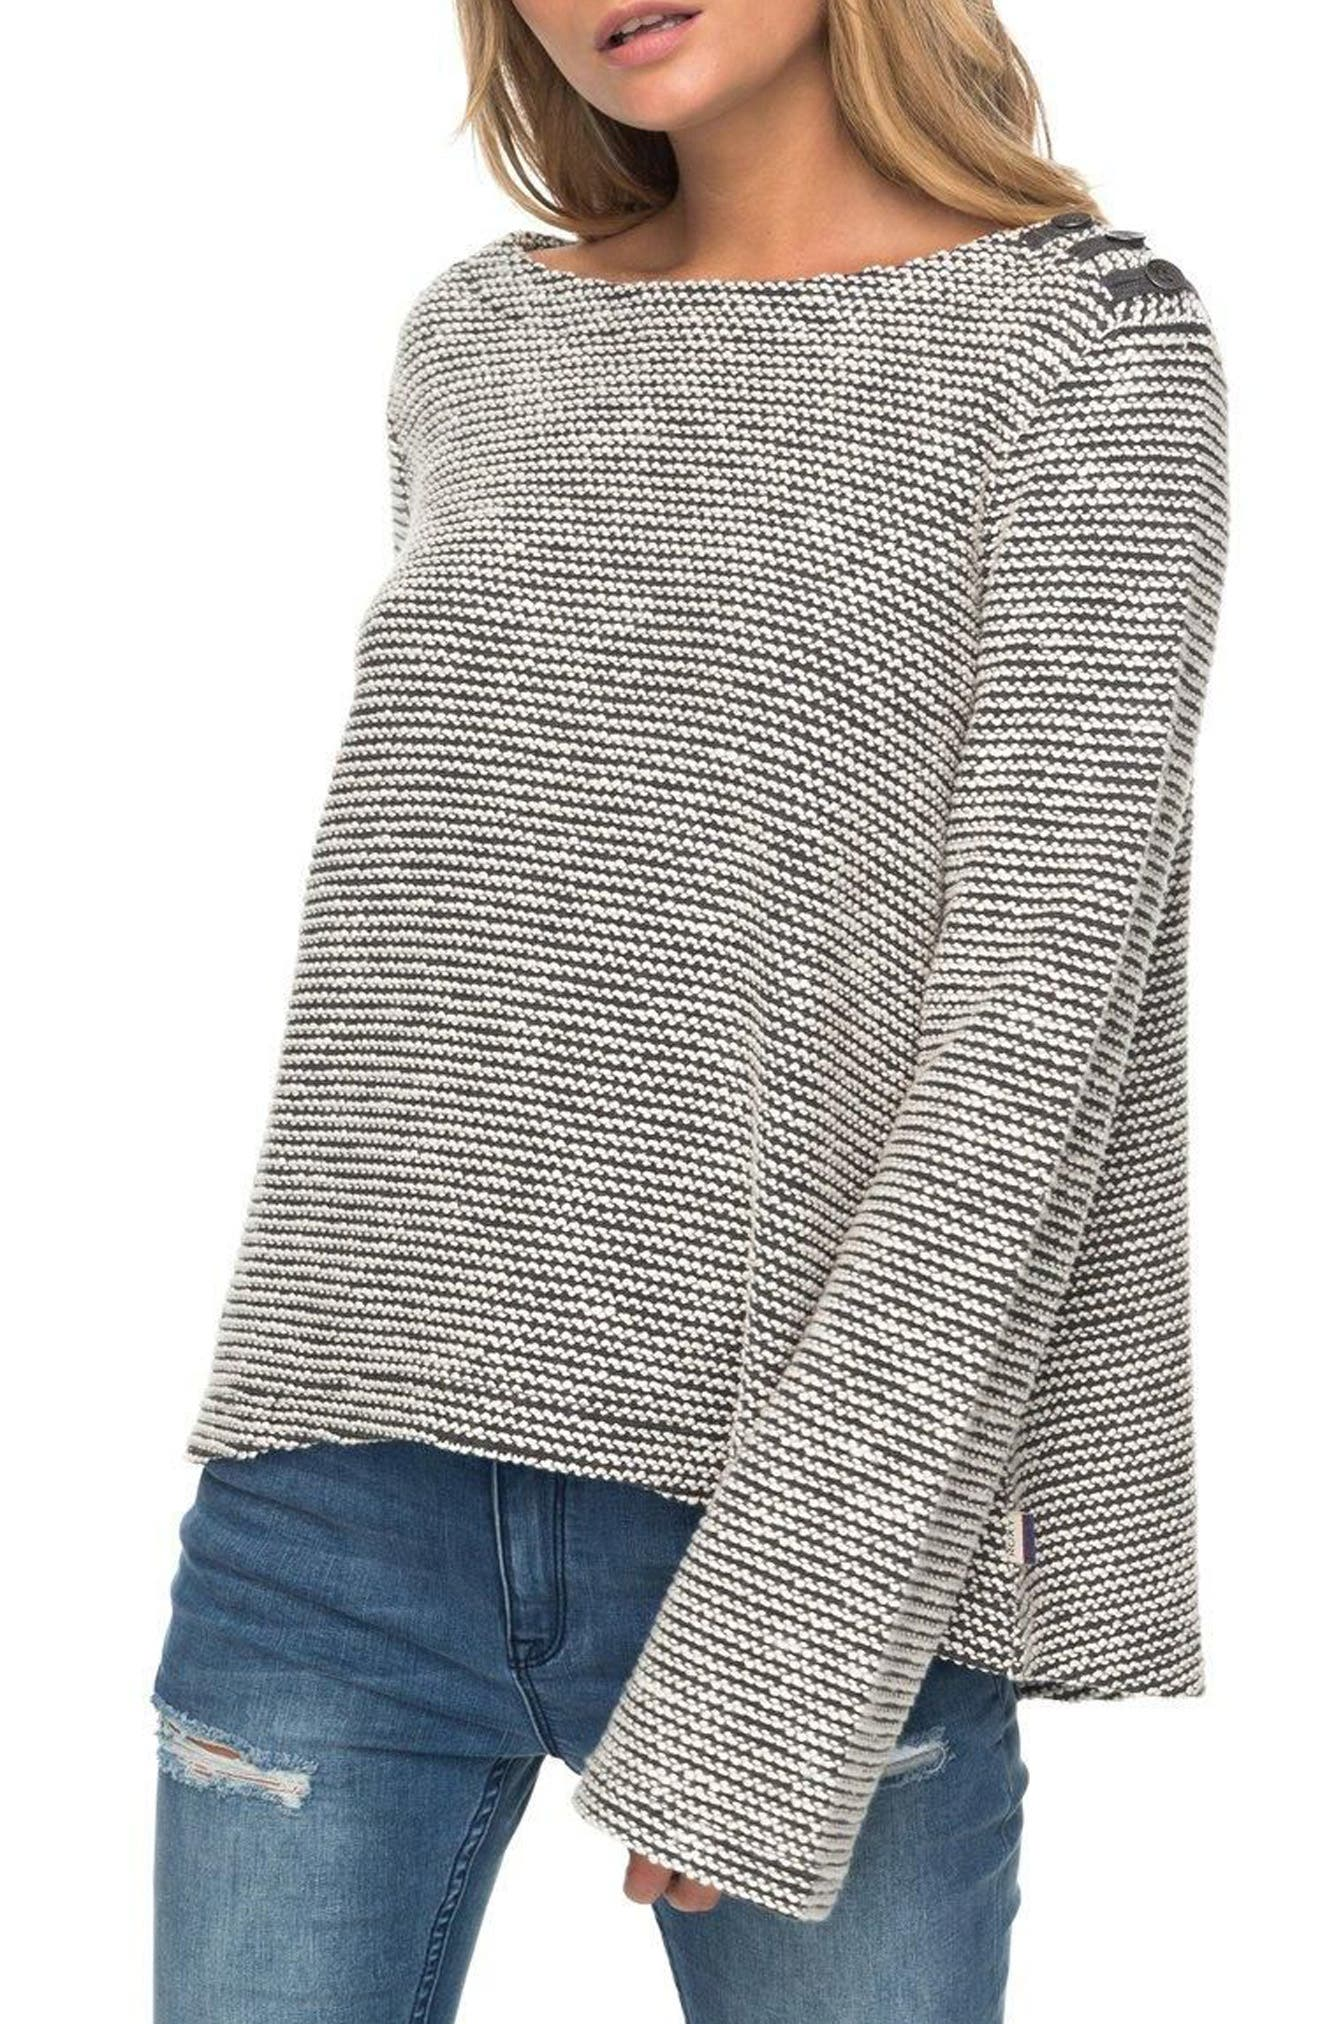 Free Thinking Sweatshirt,                         Main,                         color, Charcoal Heather